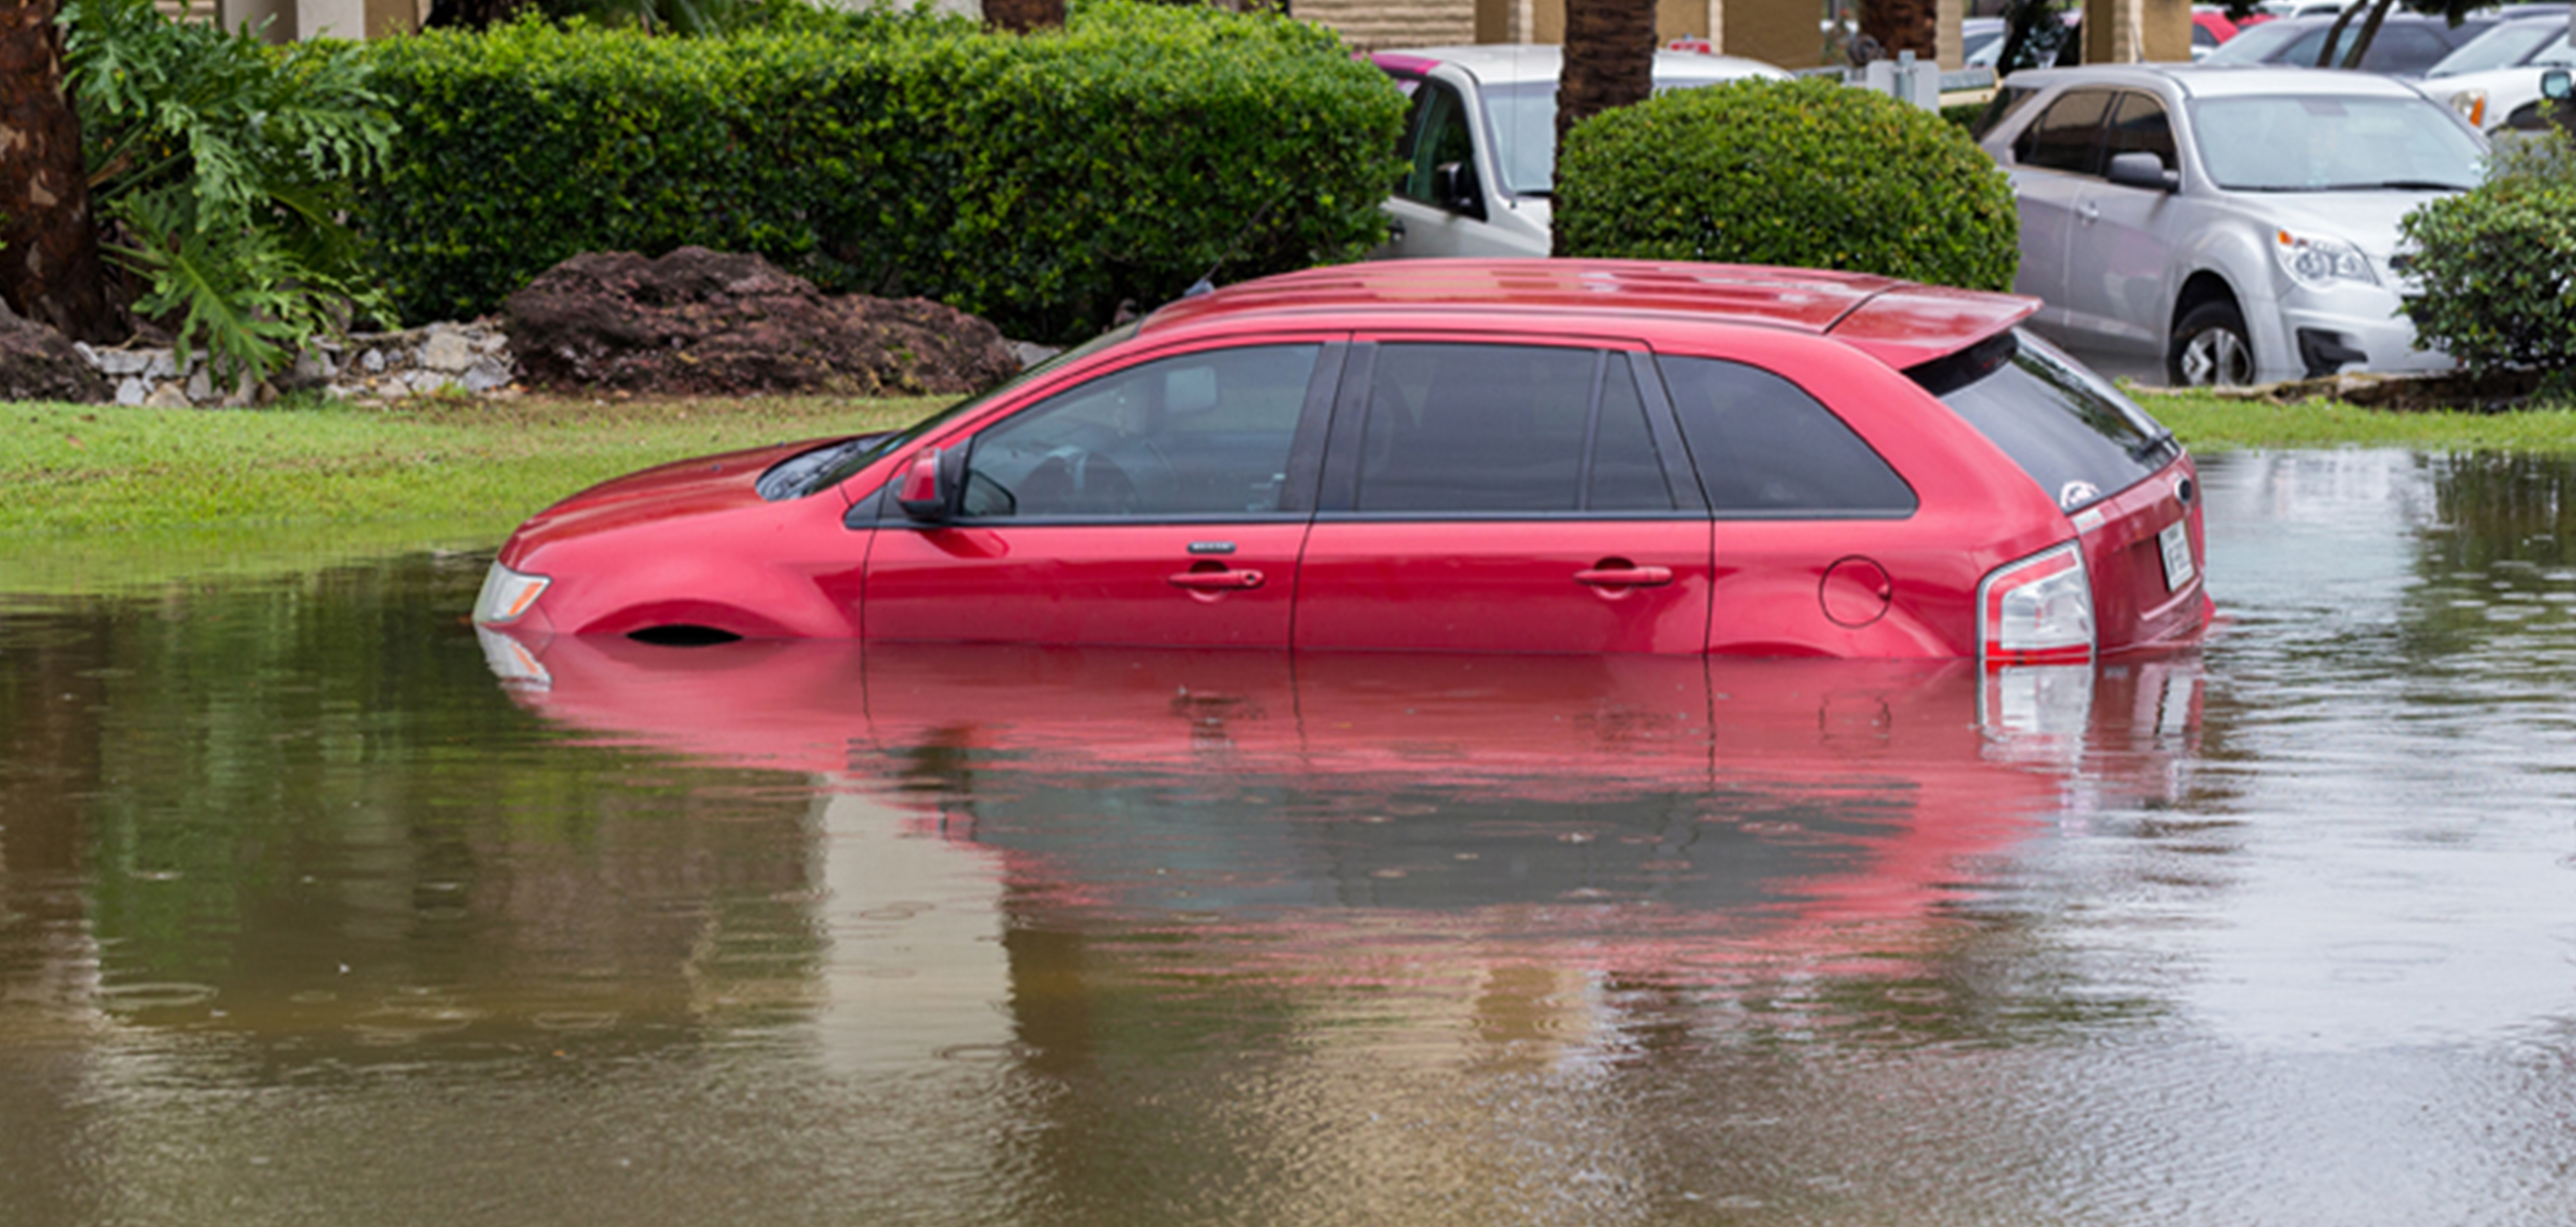 Your Car Gets Flooded